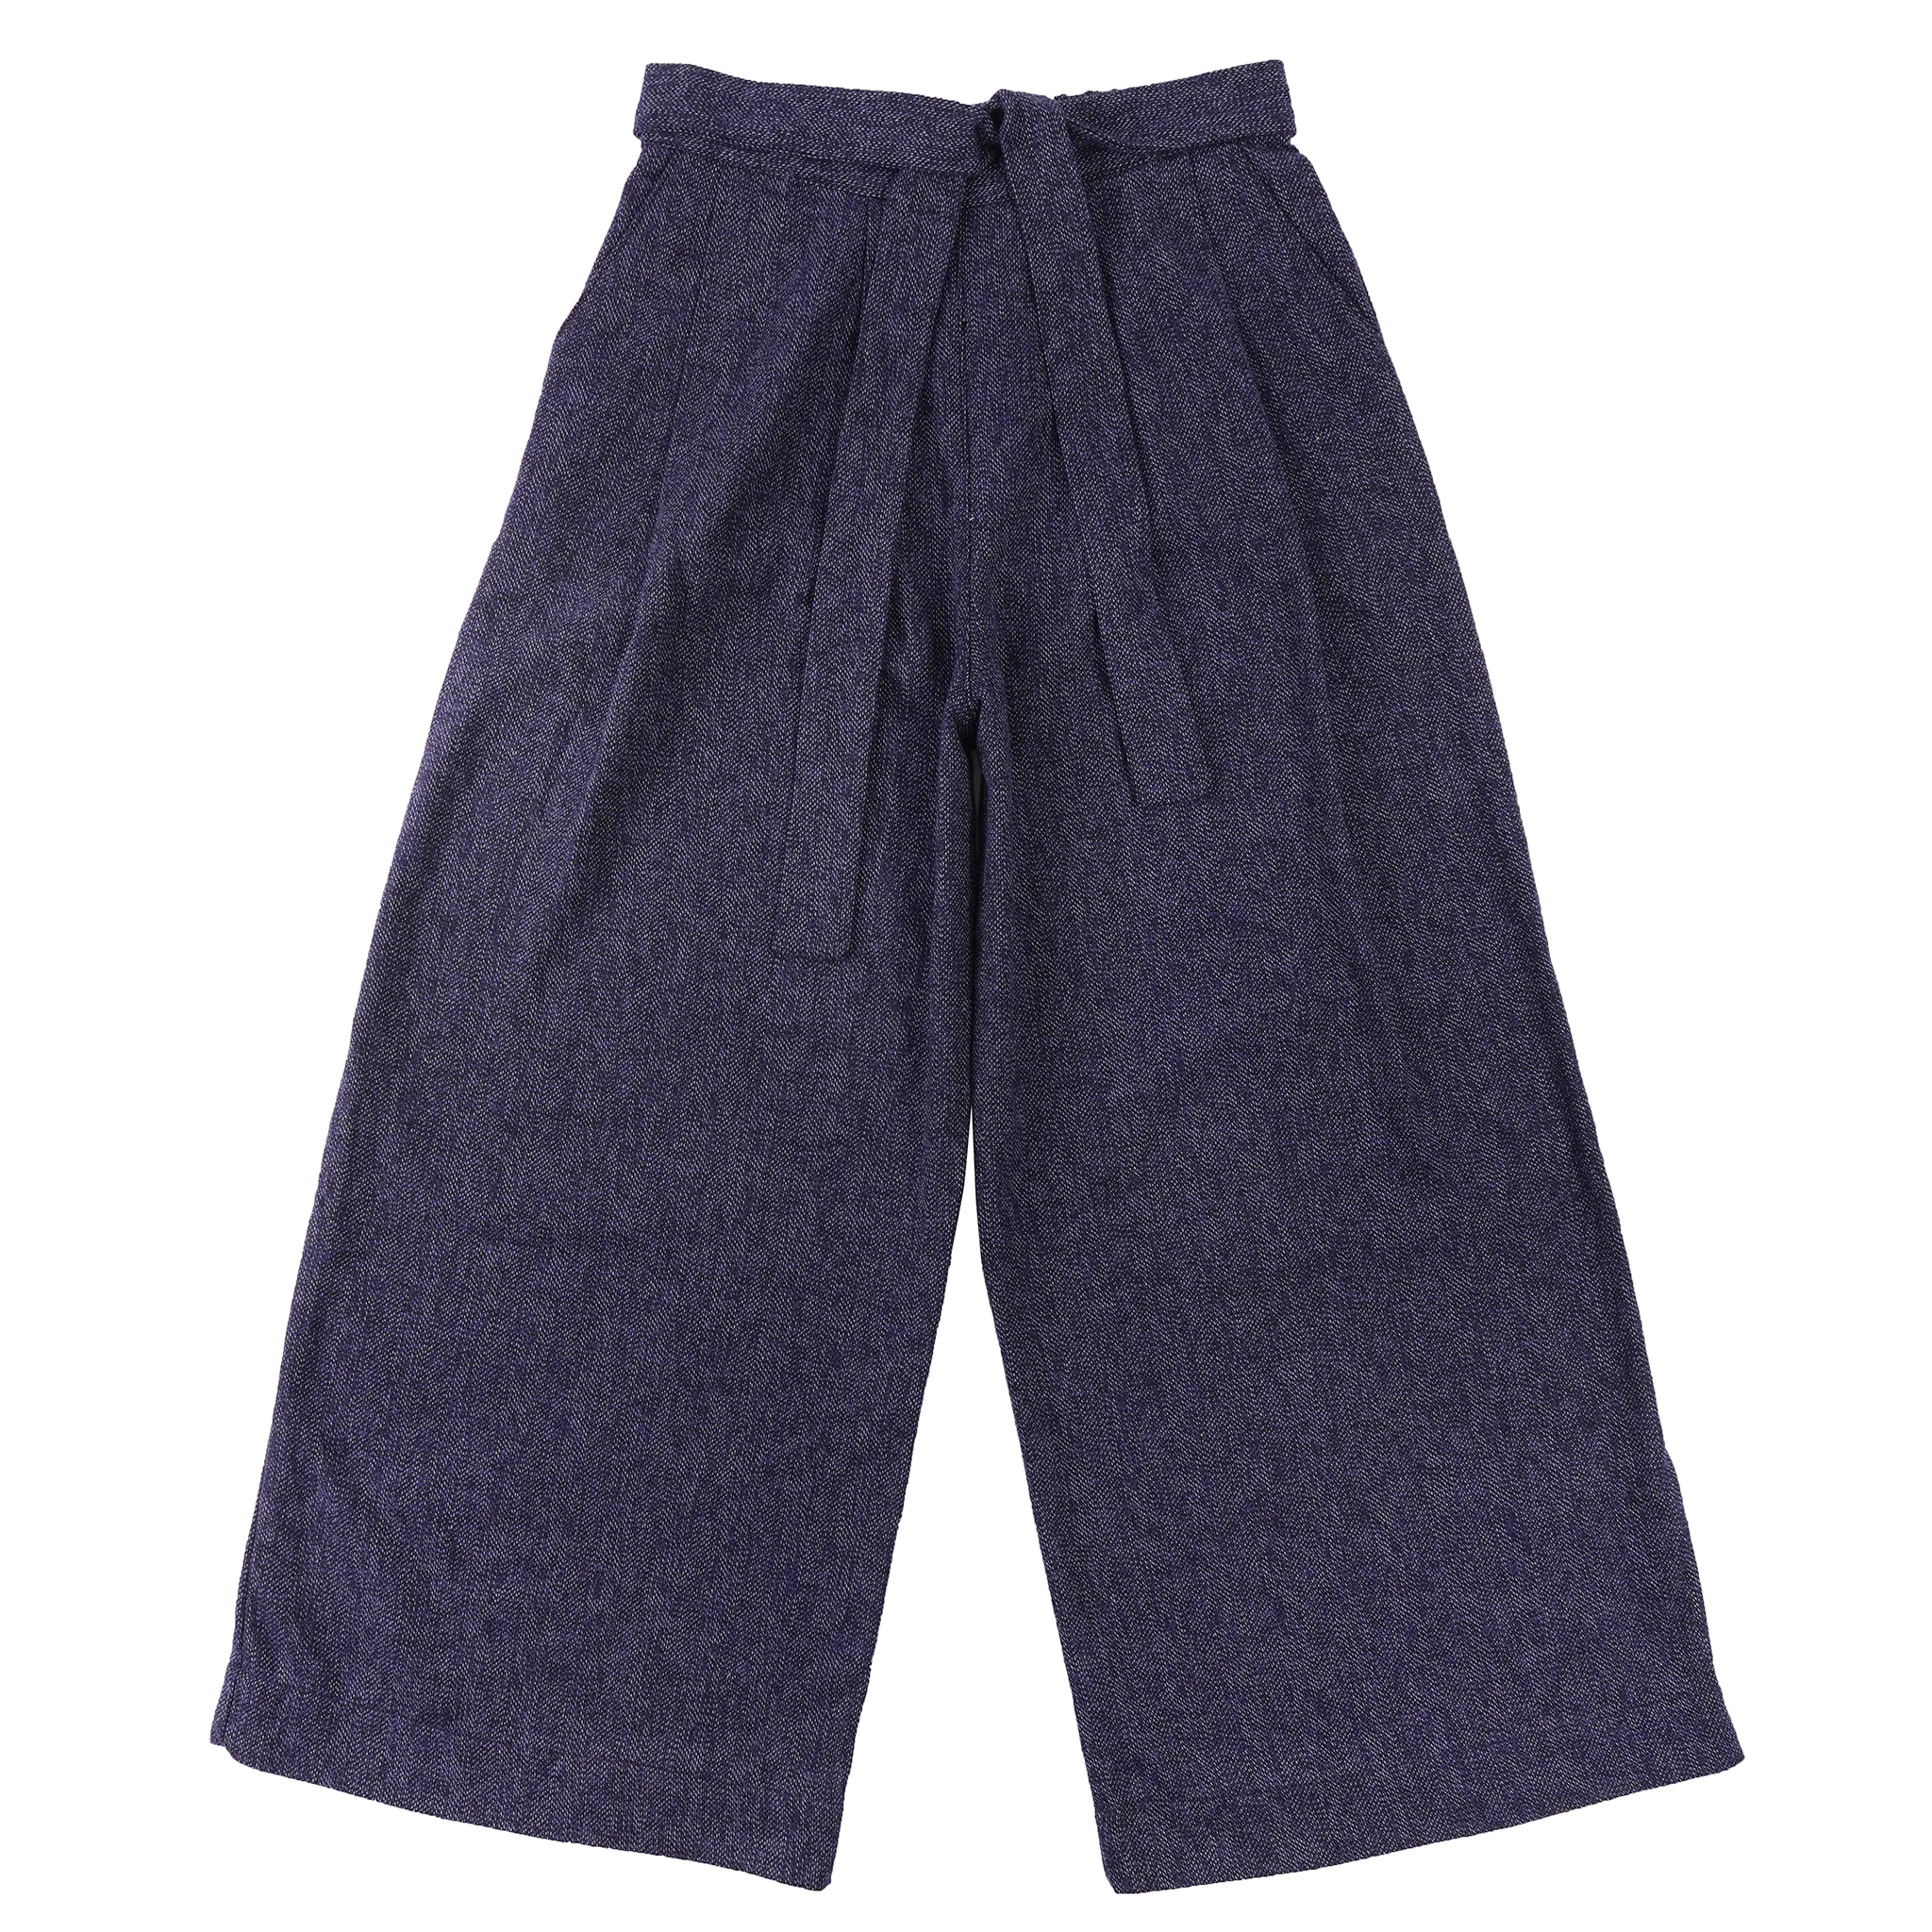 Cotton Tweed - Blue - Wide Pant